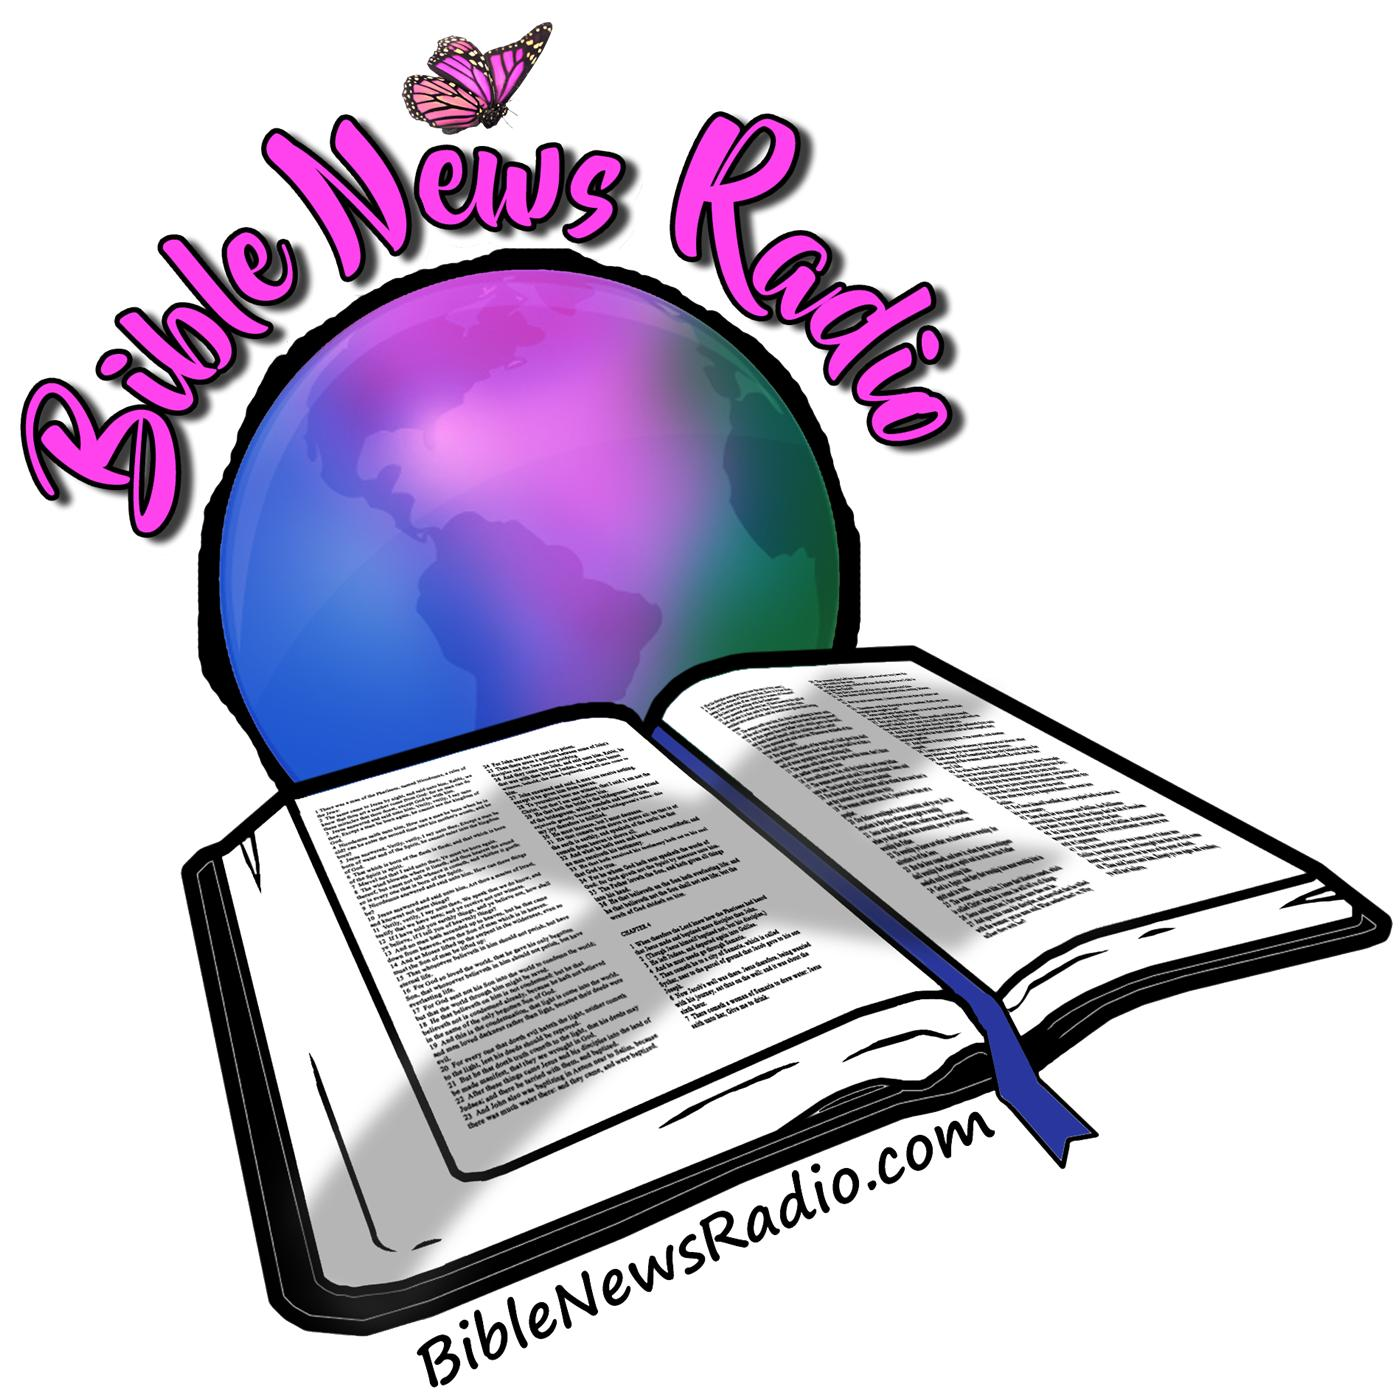 Bible News Radio.